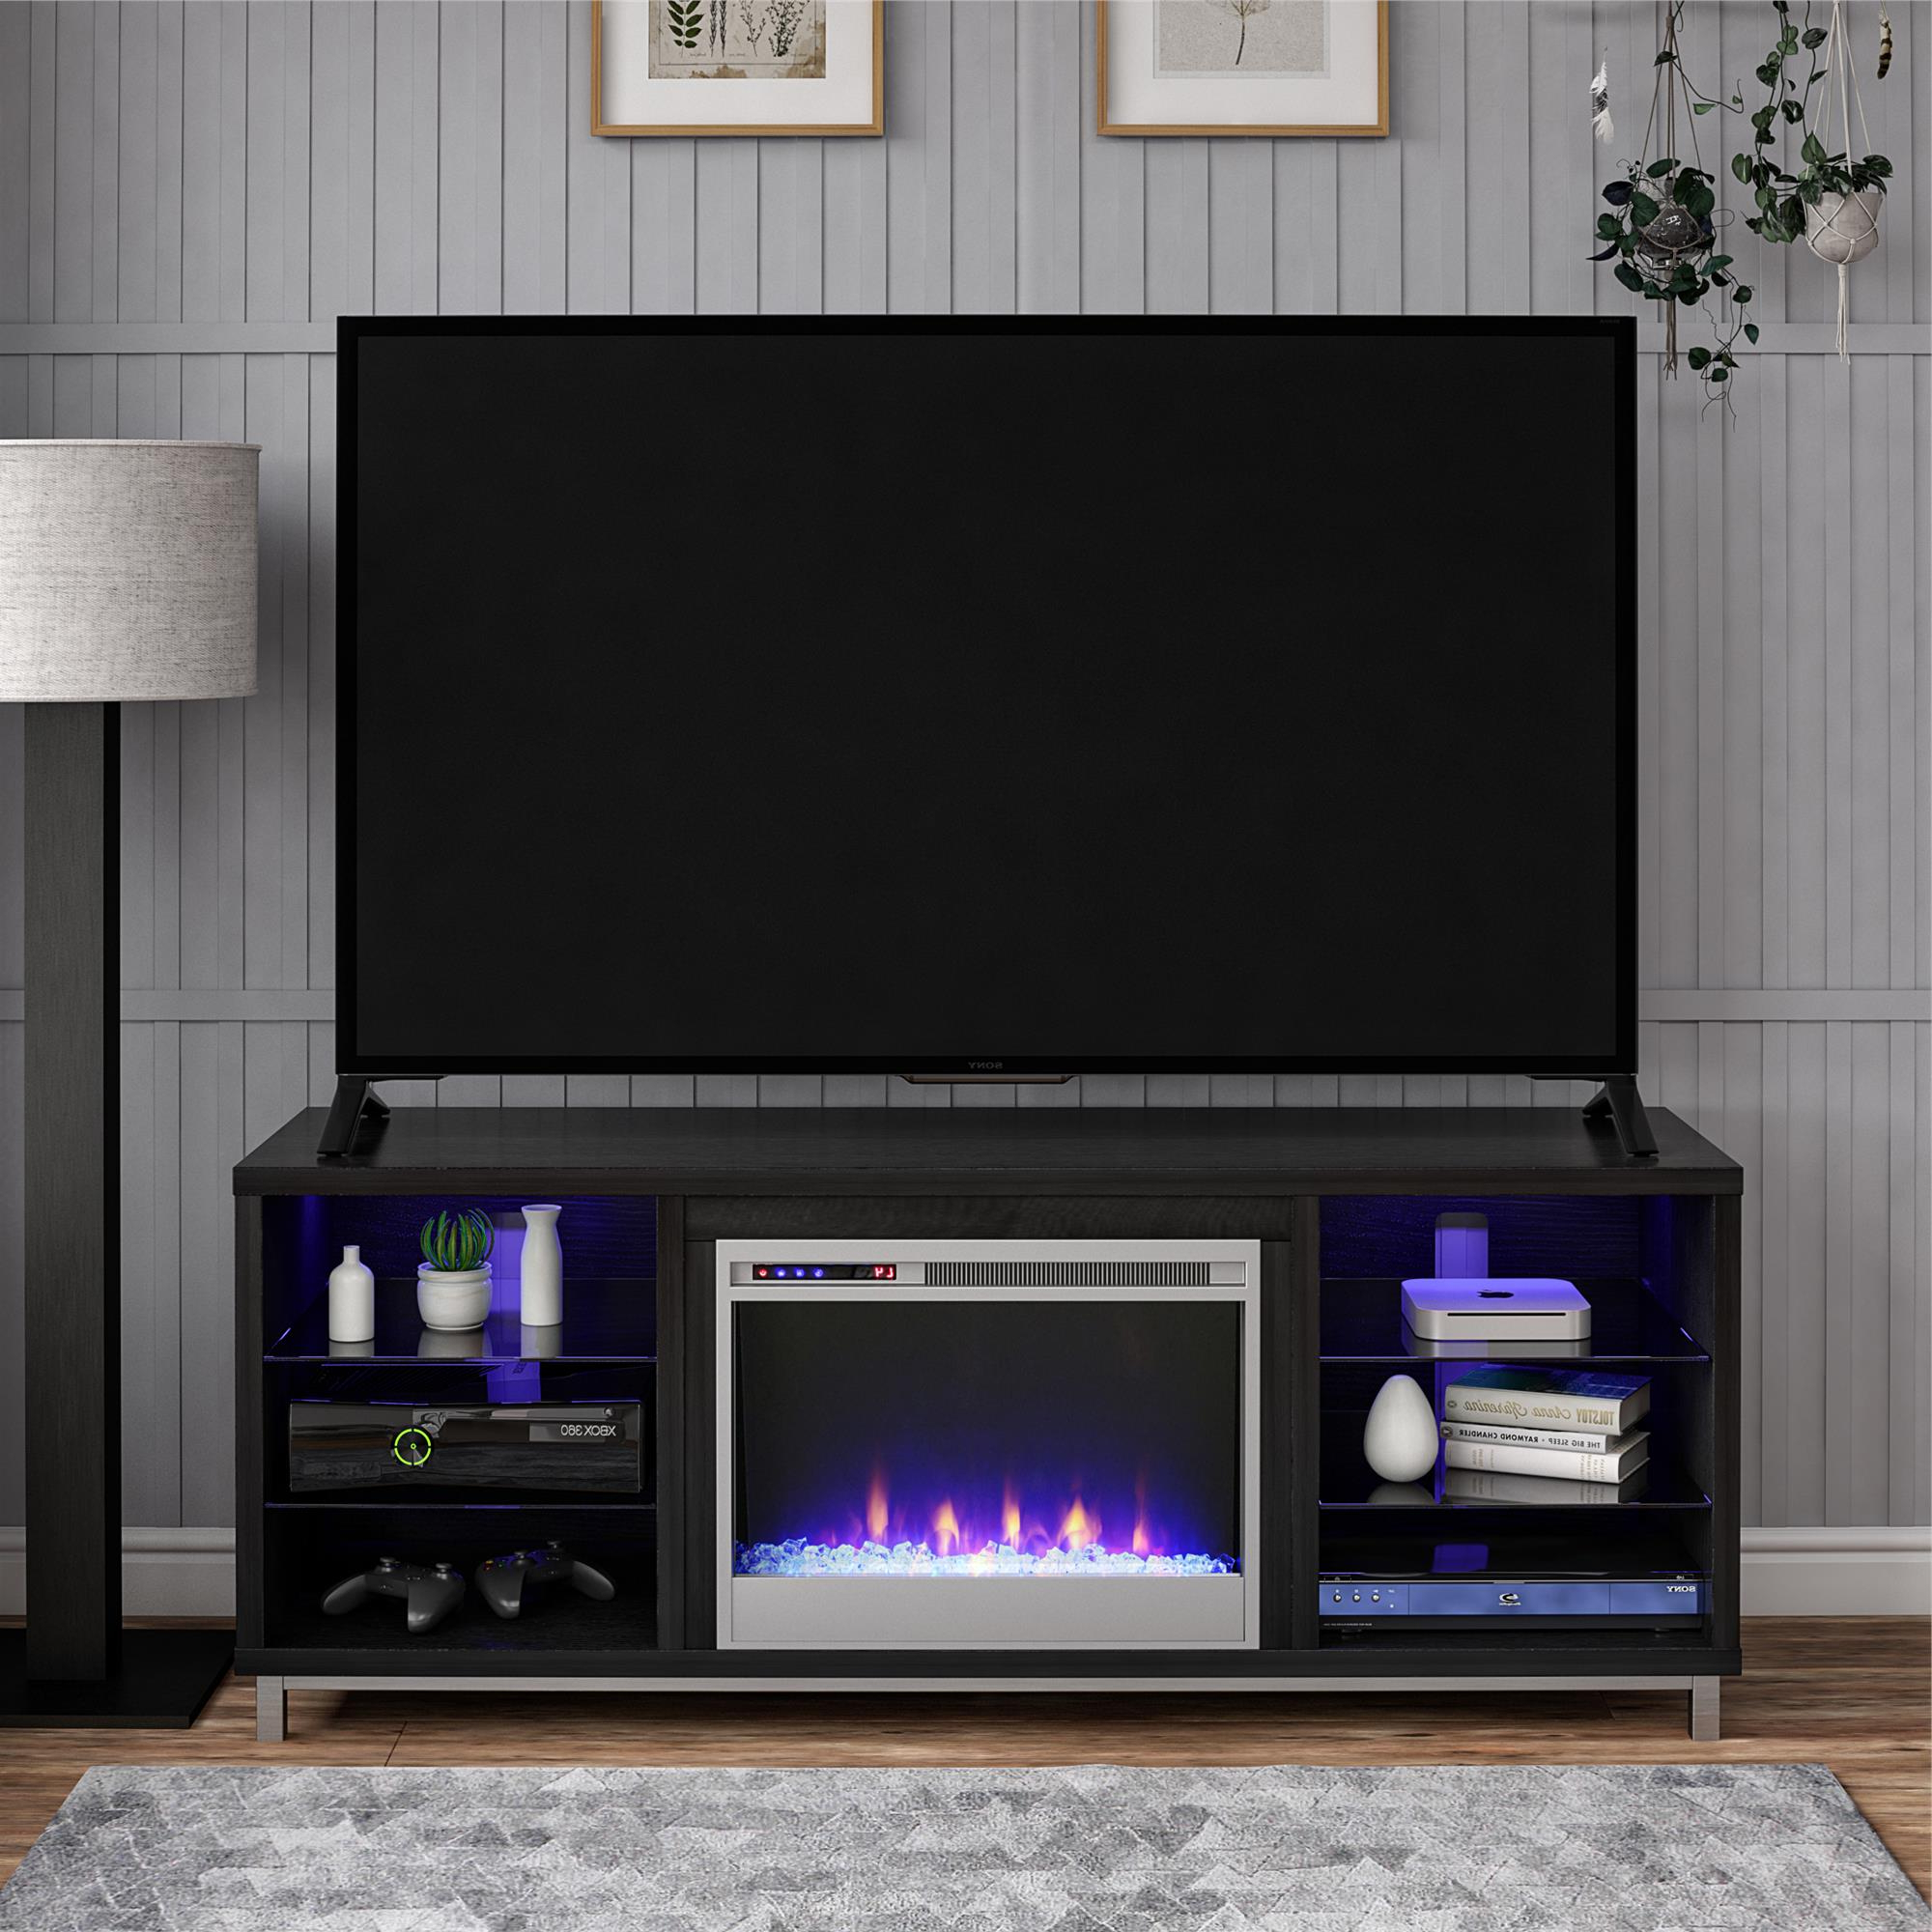 Ameriwood Home Lumina Fireplace Tv Stand For Tvs Up To 70 In Well Known Indi Wide Tv Stands (View 5 of 25)